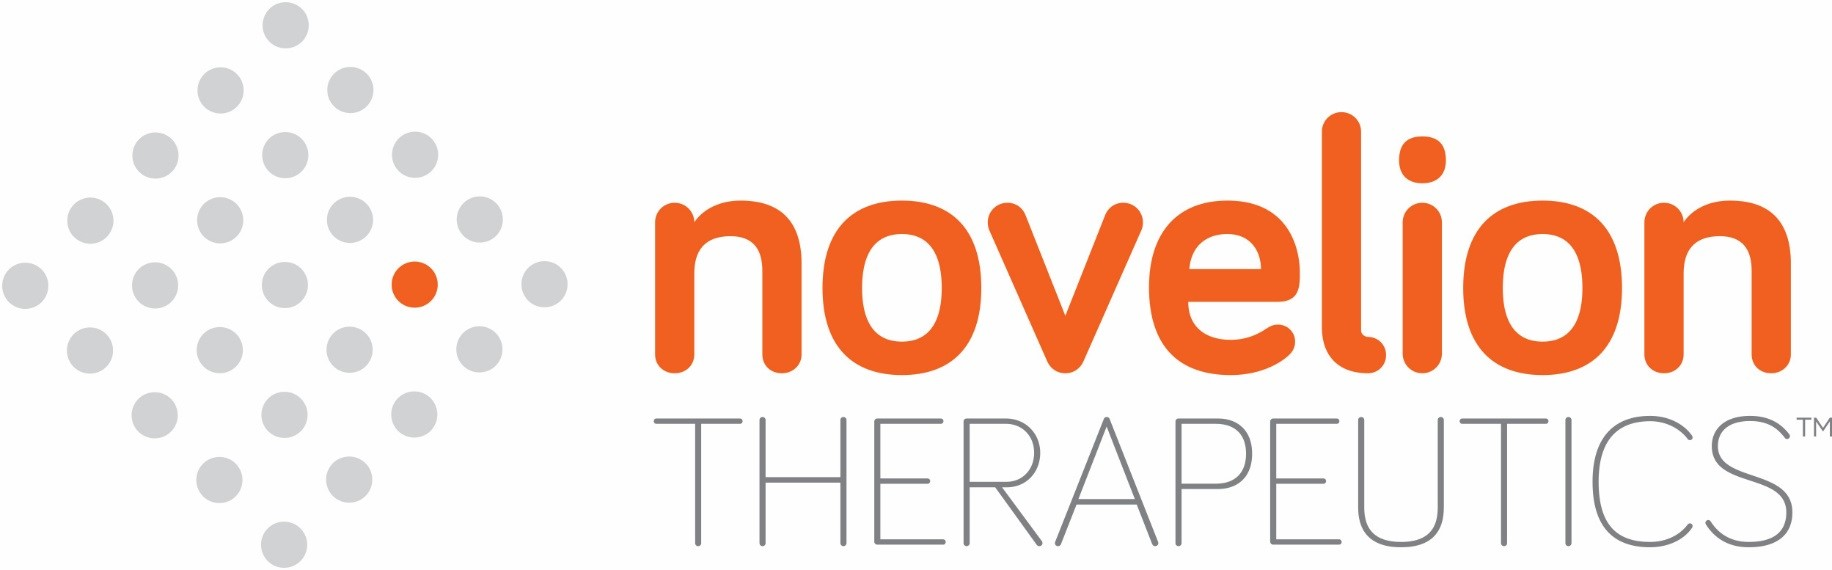 Novelion Therapeutics Announces Filing of Definitive Proxy Statement in Connection with Proposed Liquidation and Other Matters